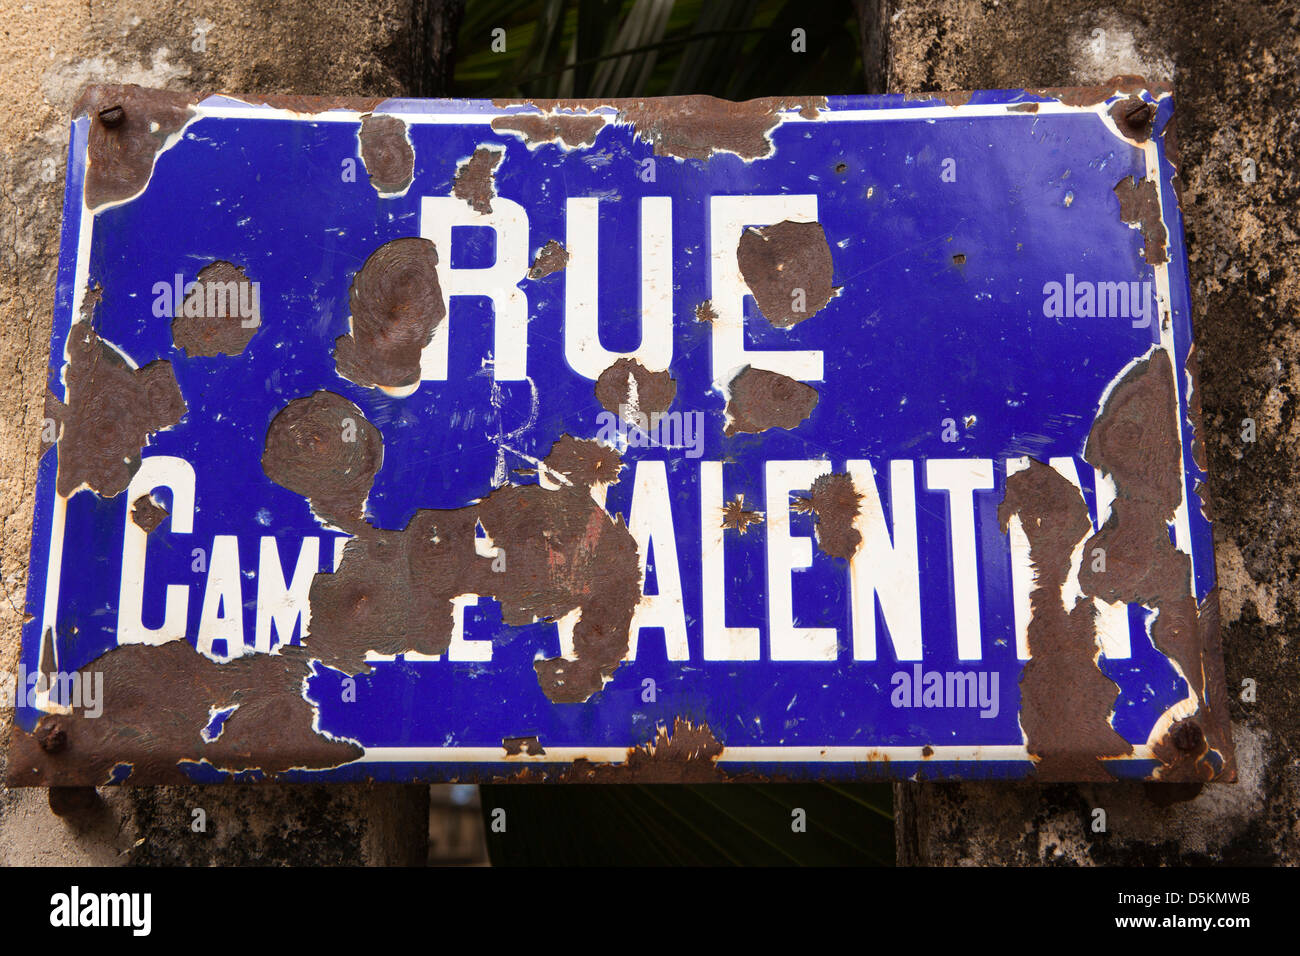 Madagascar, Nosy Be, Hell-Ville, Rue Camille Valentin chipped enamel French road name - Stock Image